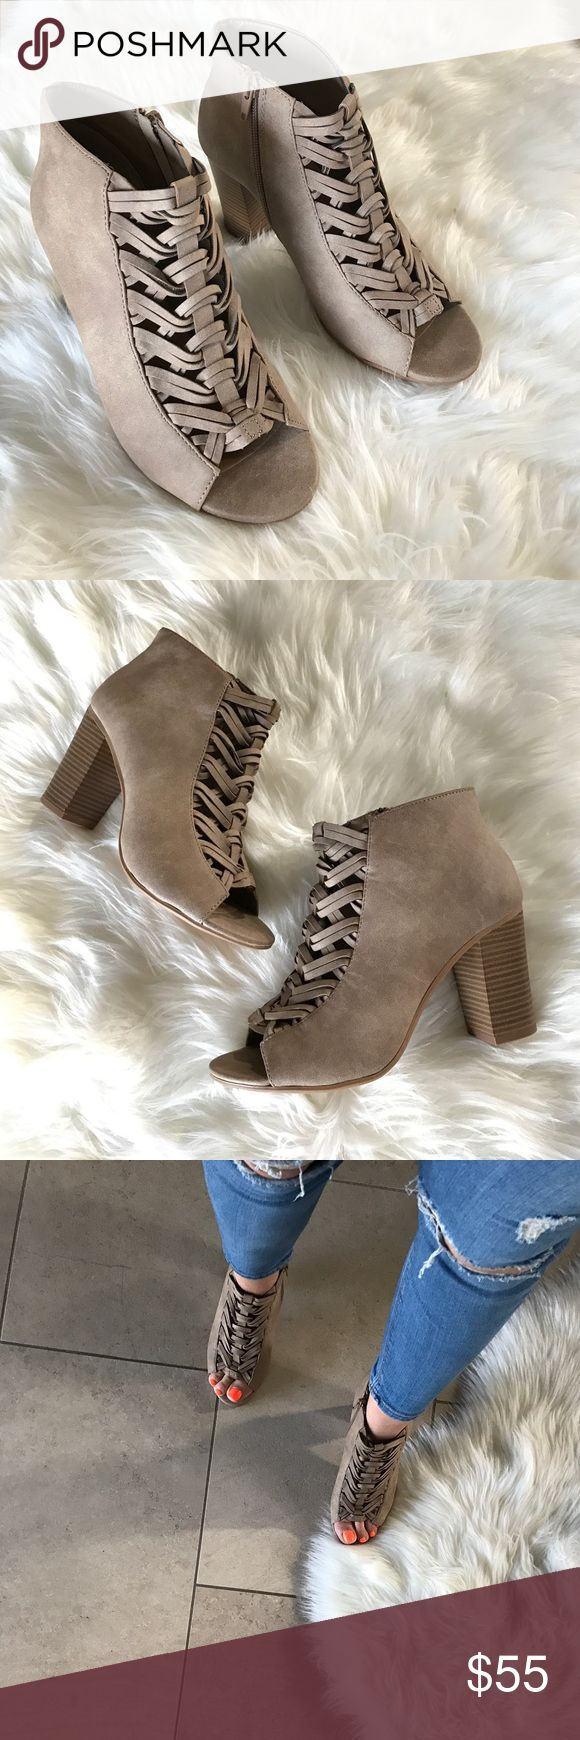 """Braided Front Chunky Heel Ankle Booties Ankle Bootie, Open Toe. Back Zipper Closure Comfortable heel. Peep Toe. Tan. Stacked Chunky Heel. Heel measures approximately 4"""" super comfortable booties. Boutique Shoes Ankle Boots & Booties"""